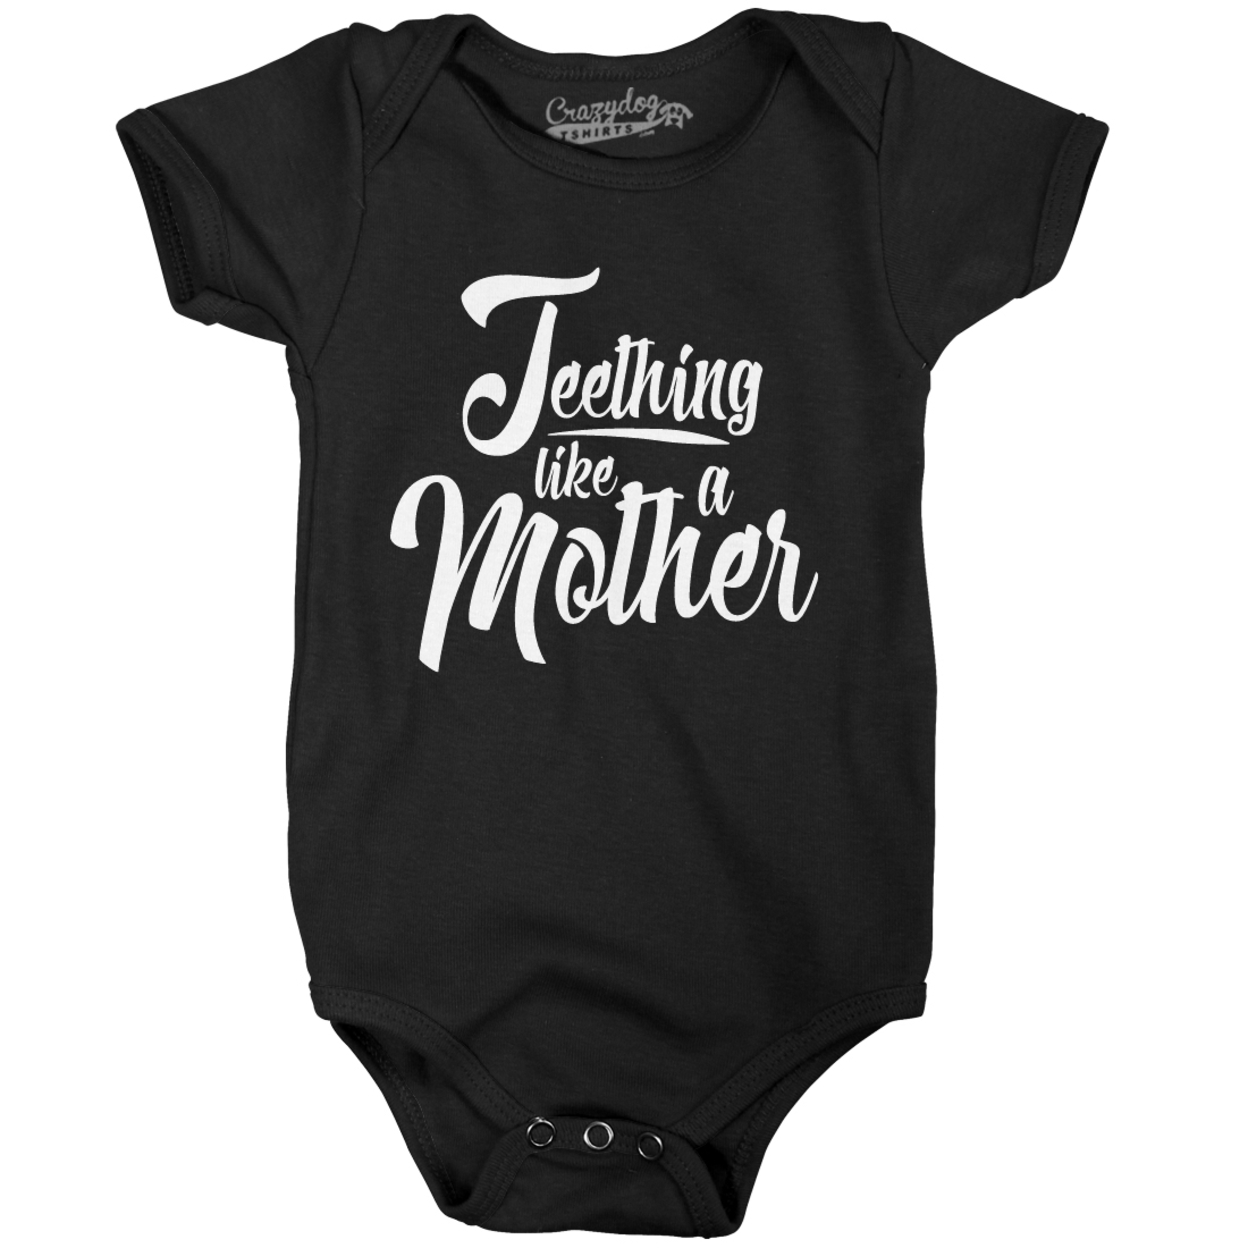 Teething Like a Mother Funny Shirts for Babies Cute Infant Tee Baby Romper Bodysuit 59de73e6e224611478047732